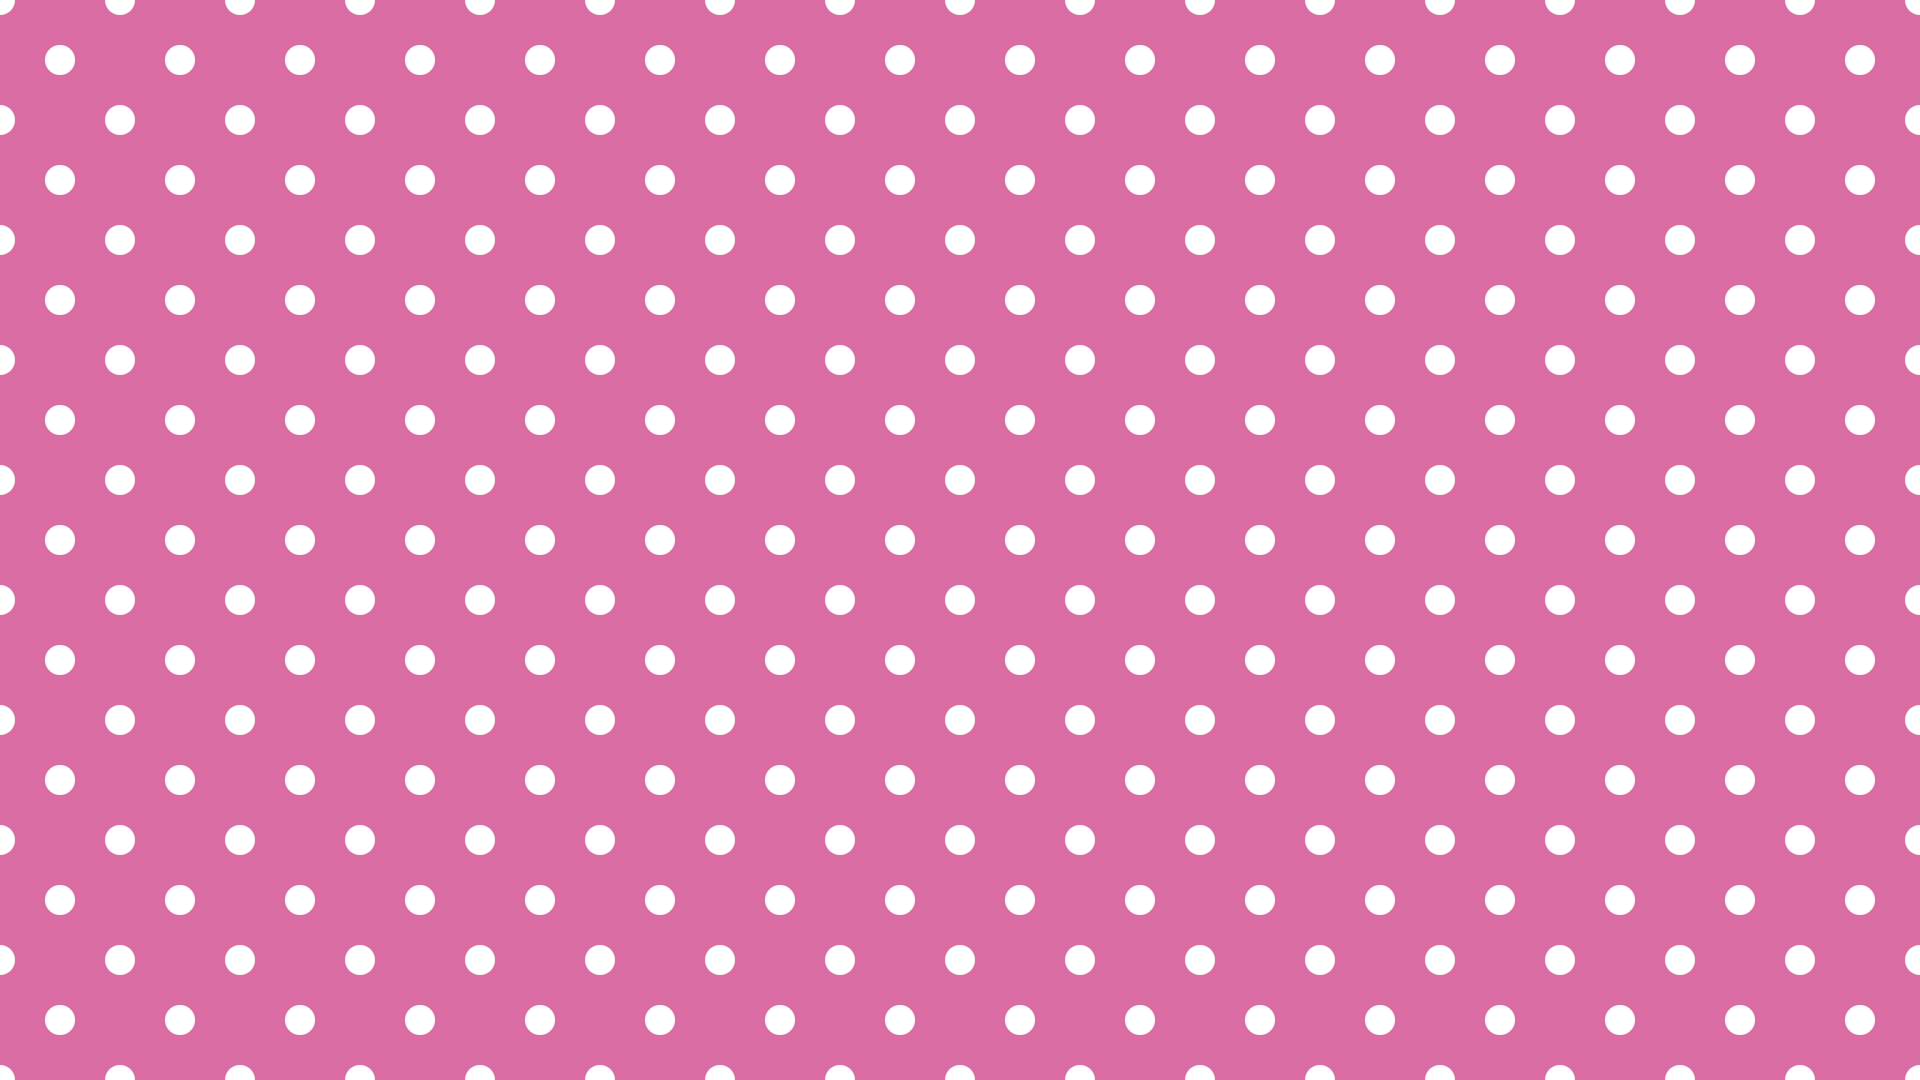 Pics photos pink polka dot s wallpaper - Vintage Wallpaper Polka Dot